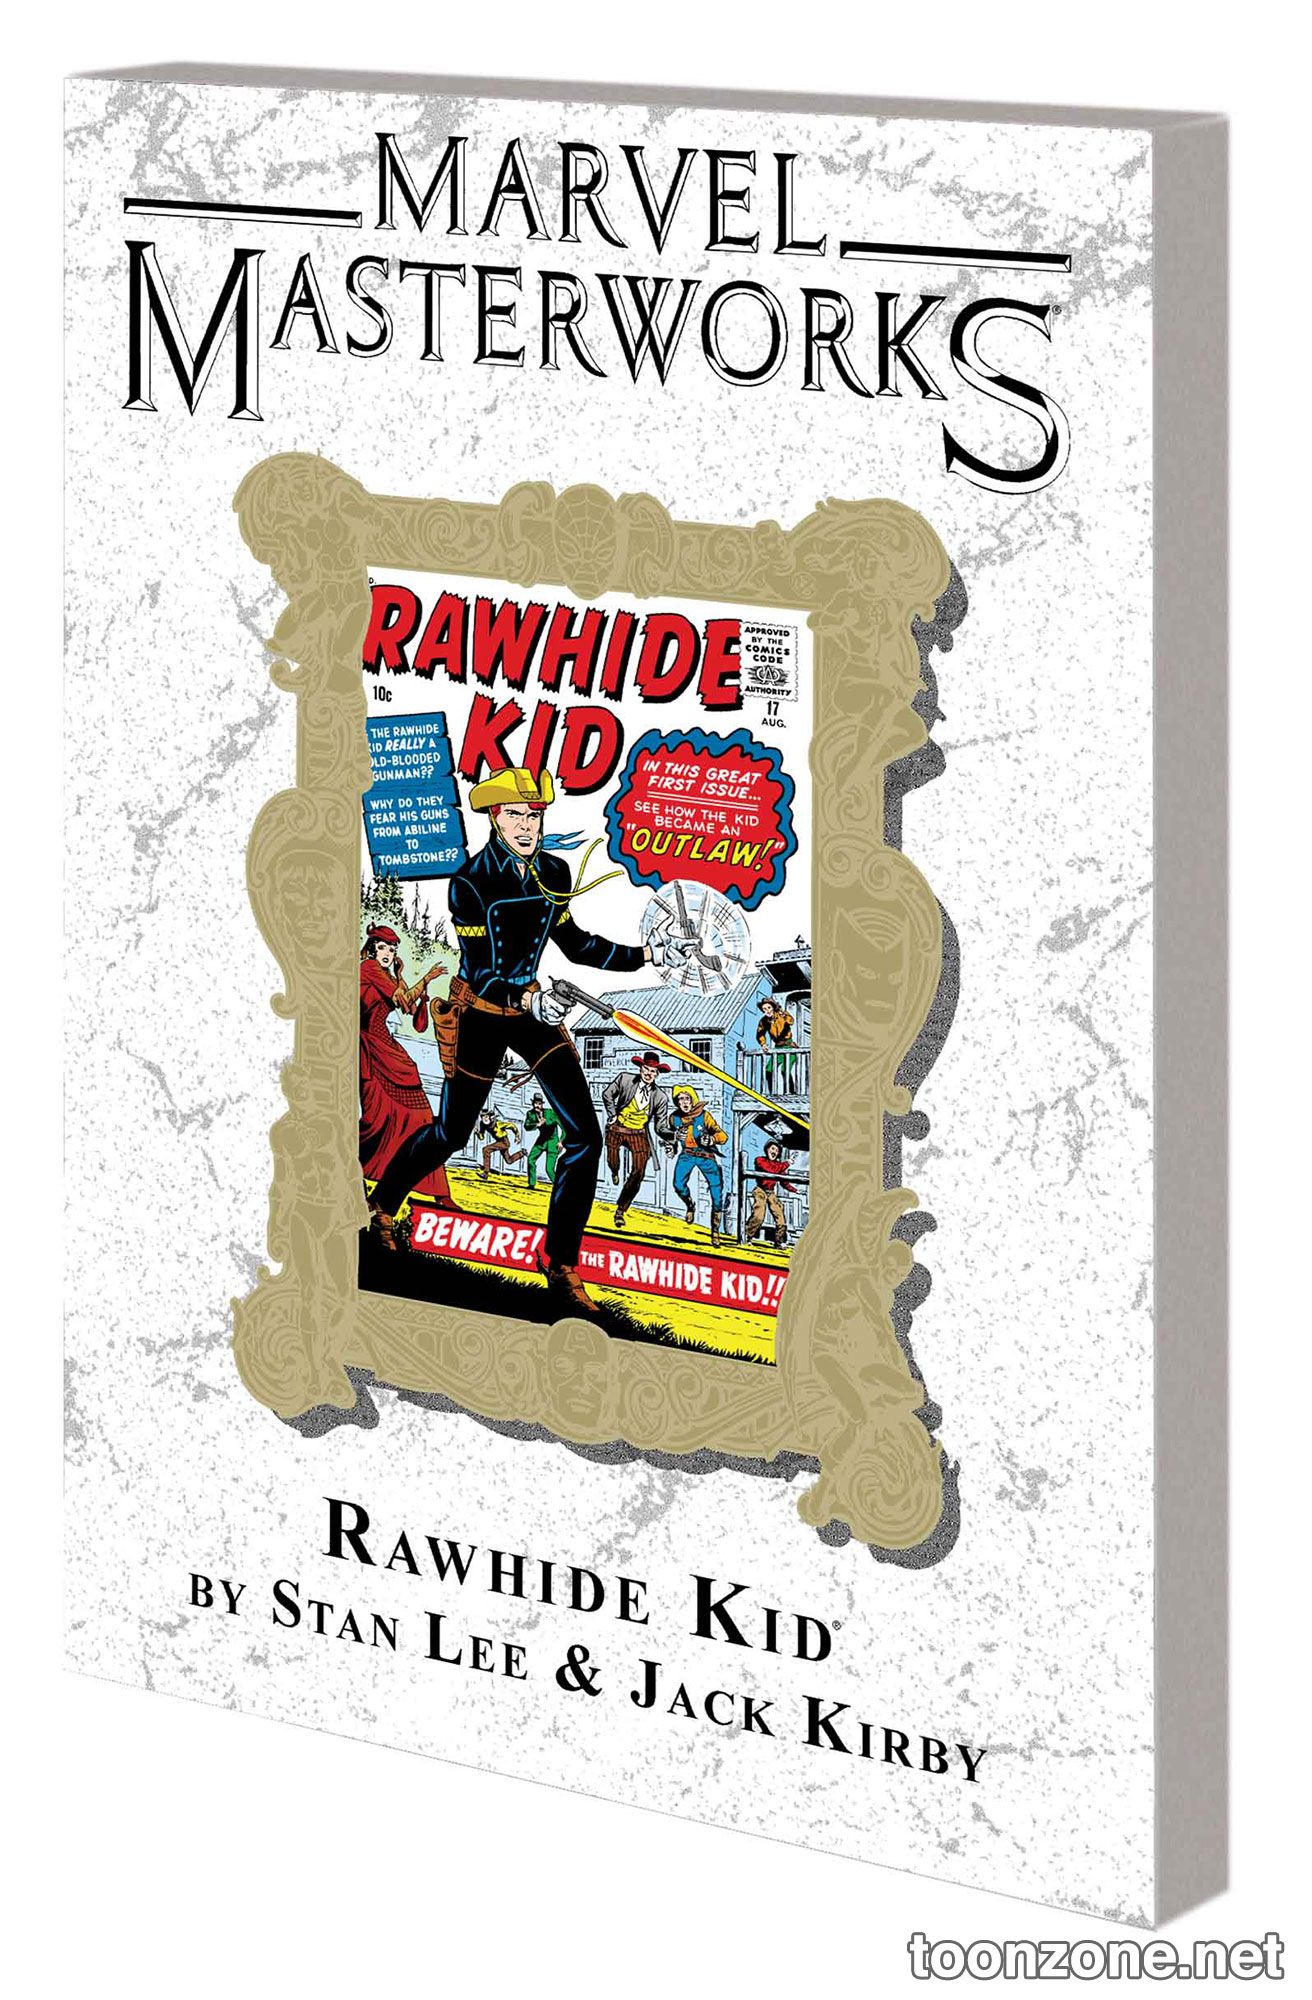 MARVEL MASTERWORKS: RAWHIDE KID VOL. 1 TPB — VARIANT EDITION VOL. 63 (DM ONLY)